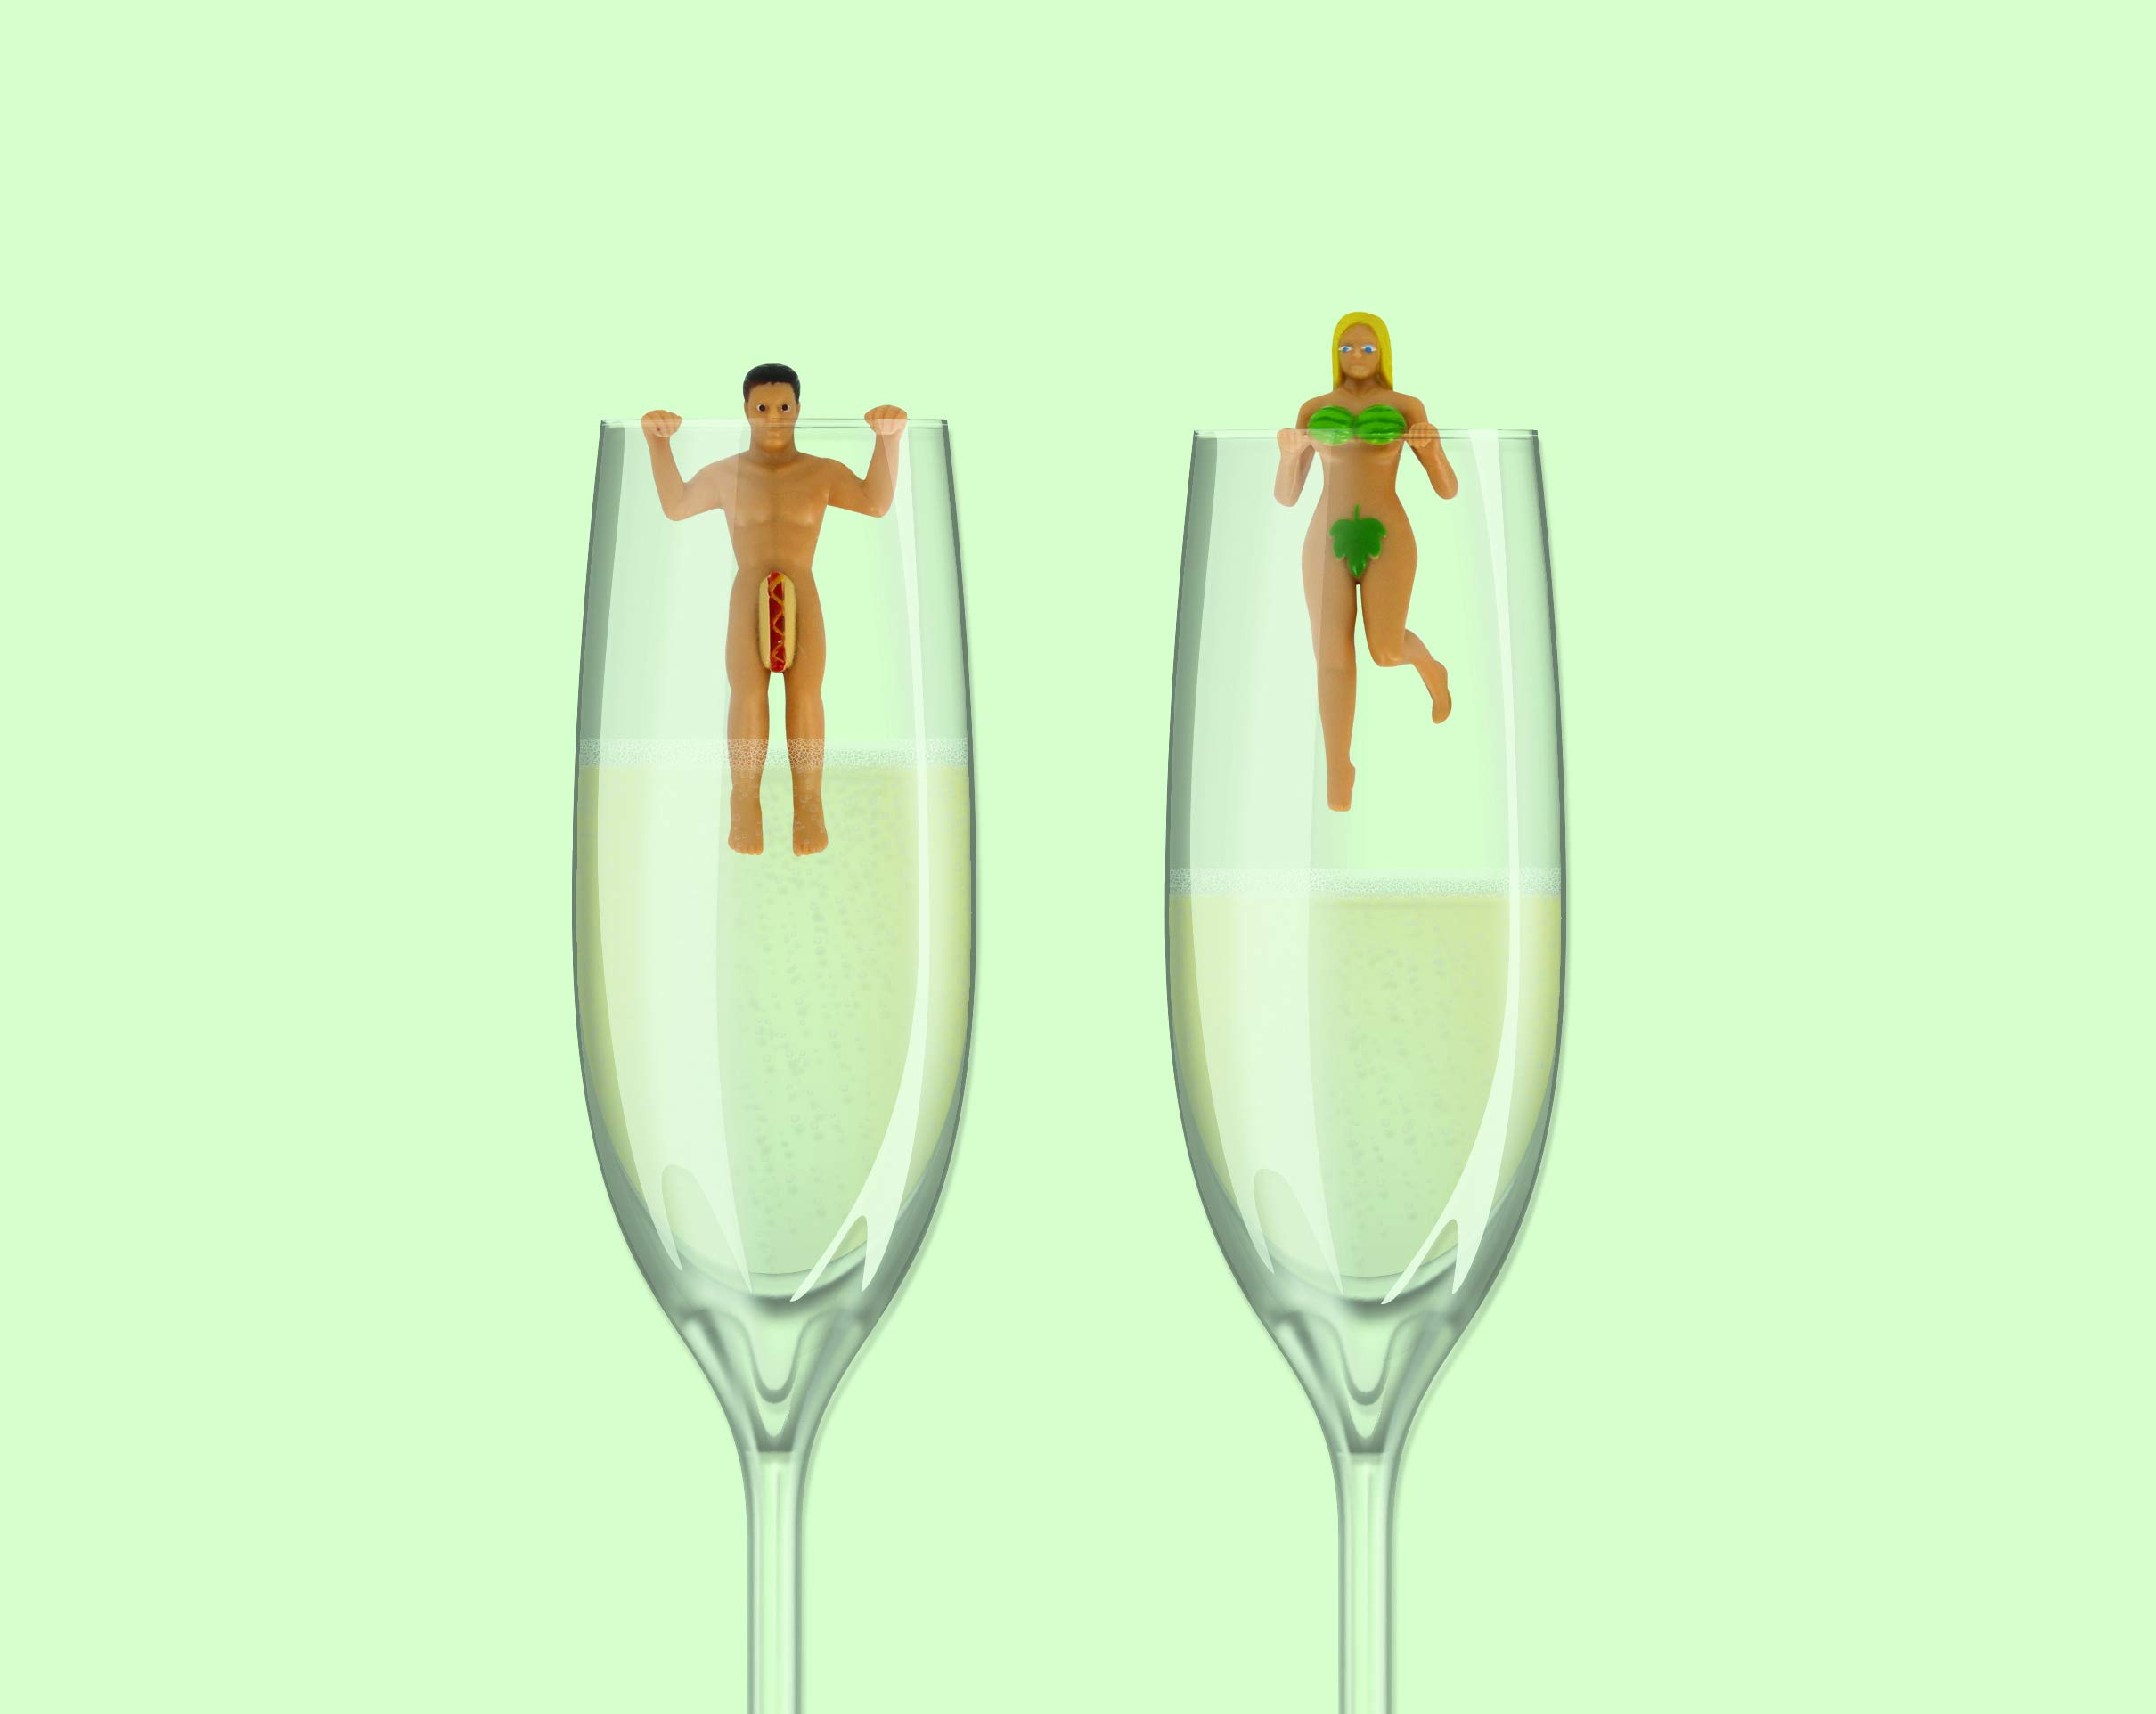 NPW Cocktail/Wine Glass Markers, In The Buff by NPW-USA (Image #6)